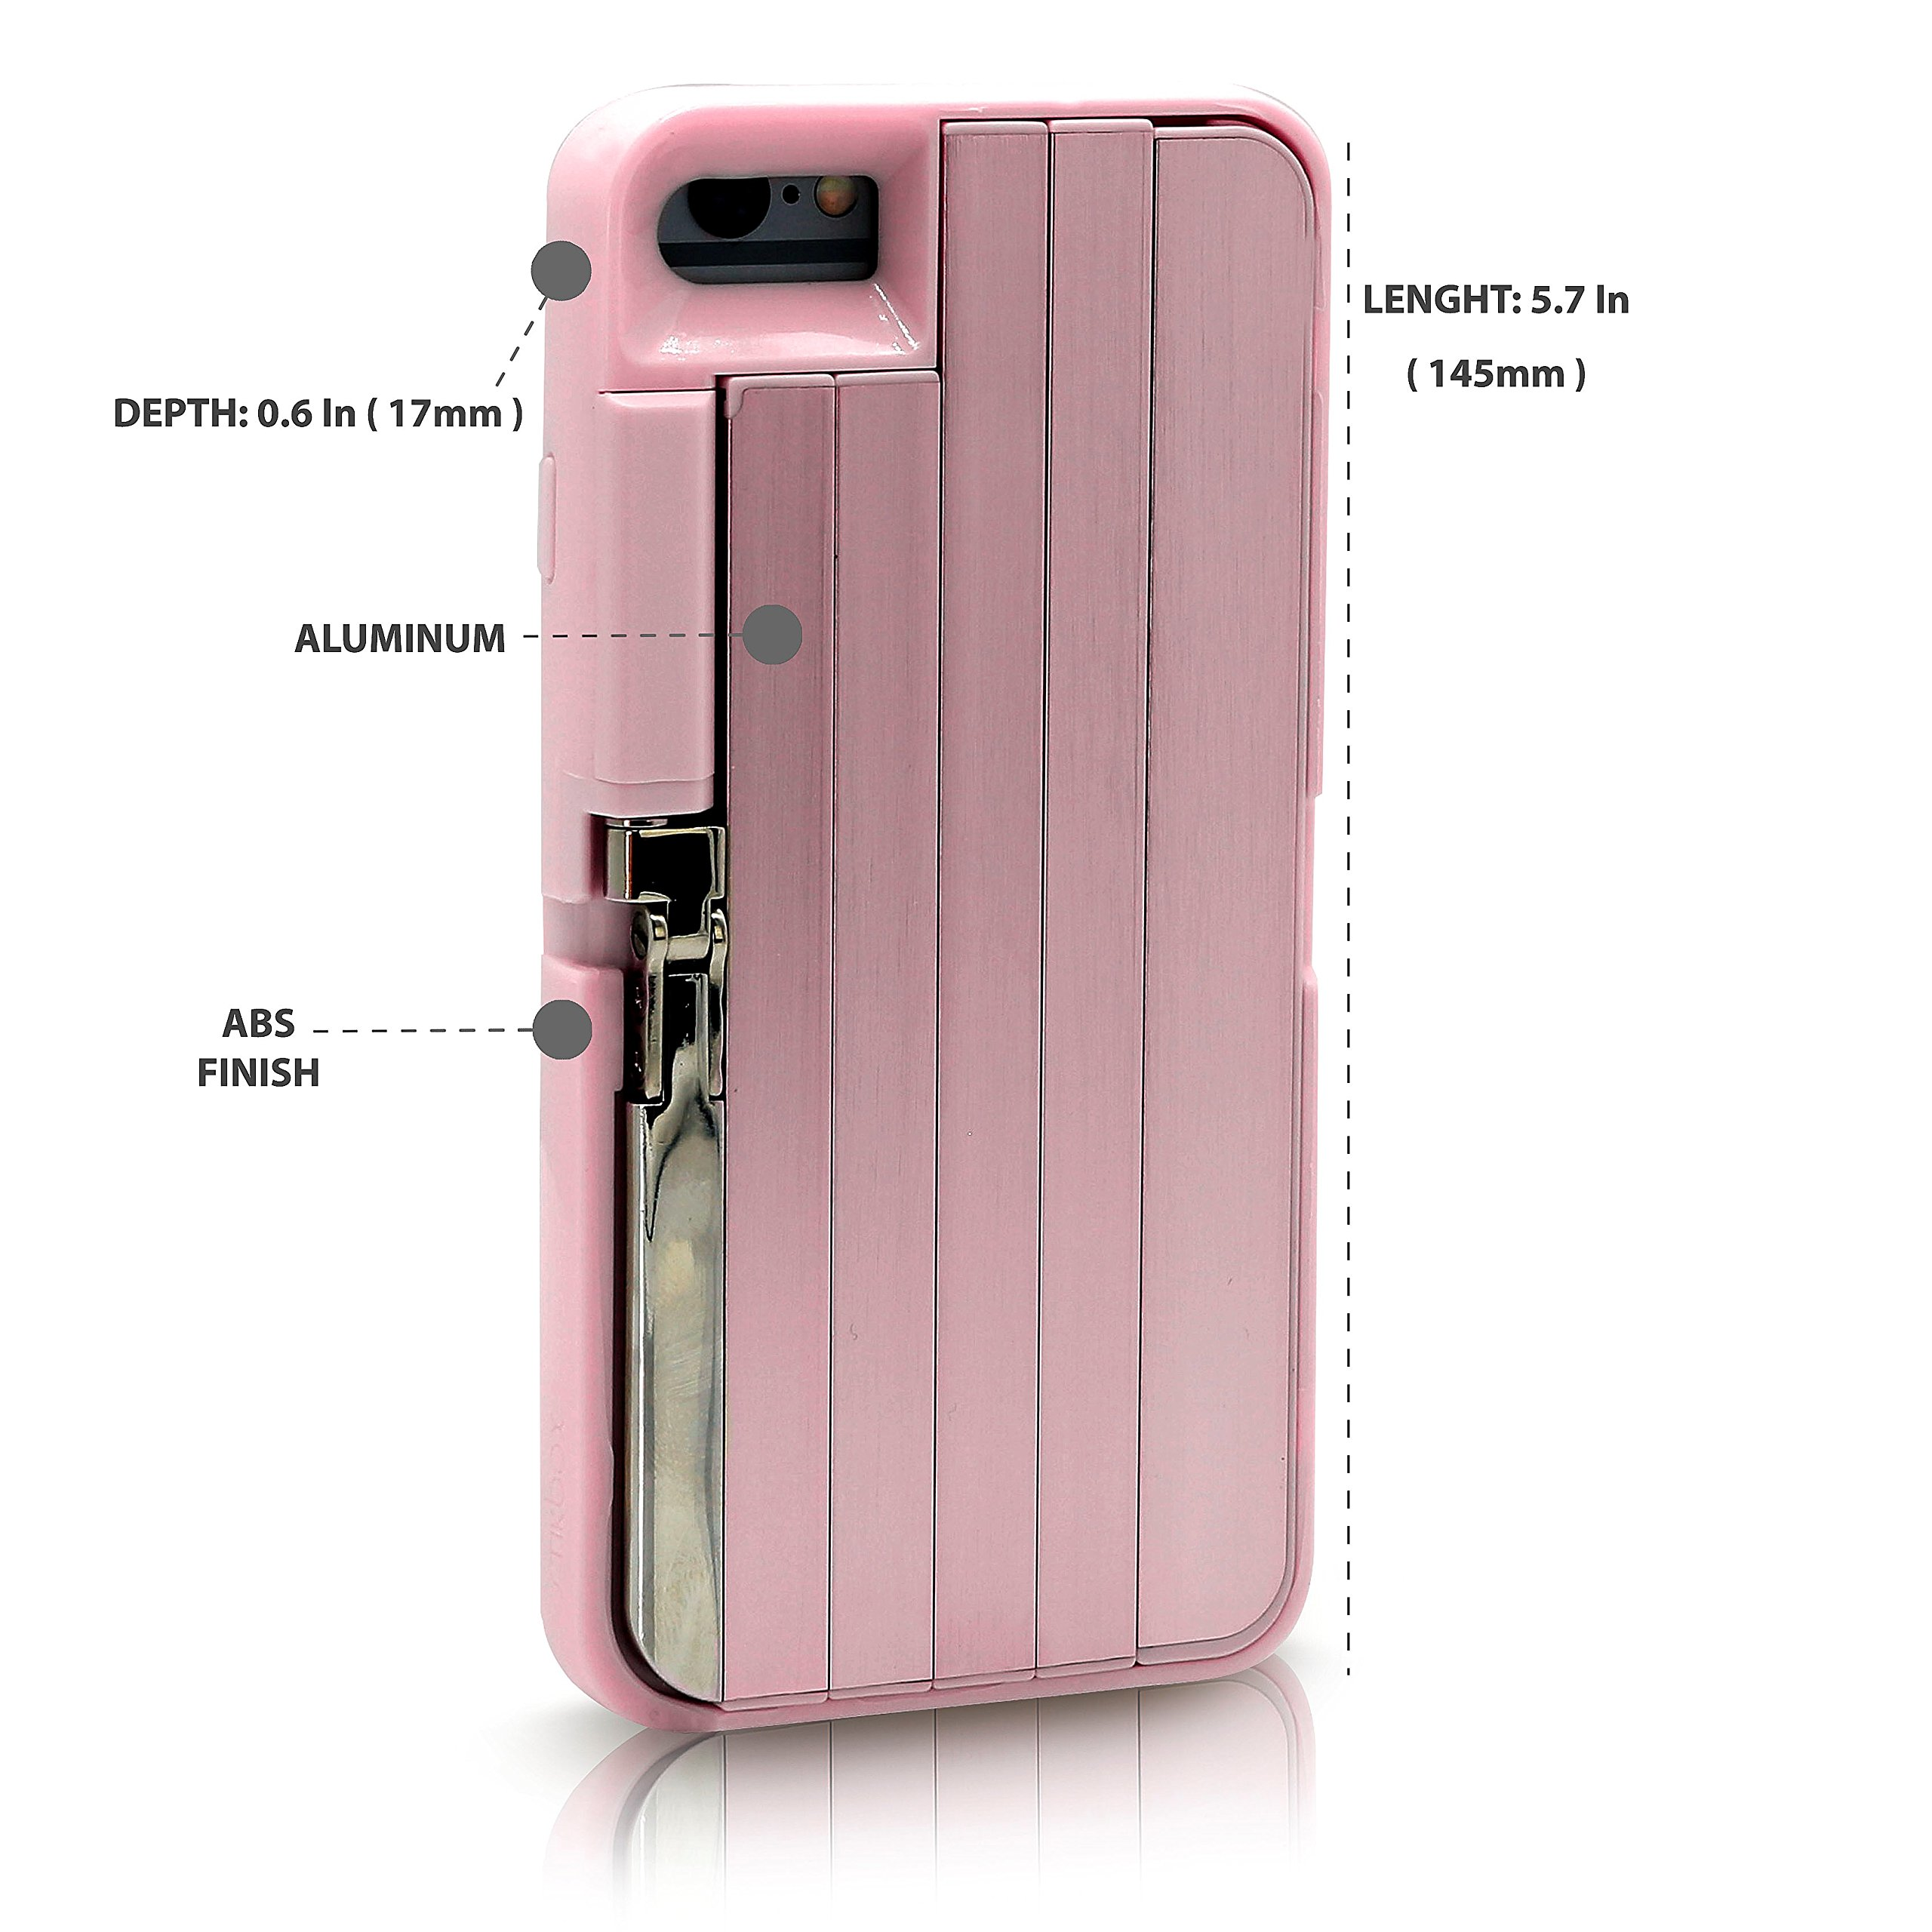 "StikBox Selfie Stick iPhone Case, Extendable Monopod W/ Bluetooth Trigger, Lightweight, Rechargeable, Wireless, Pocket Size, 360 degree & 20"" Extension for iPhone 8S/8/7/6S/6 (Pink)"